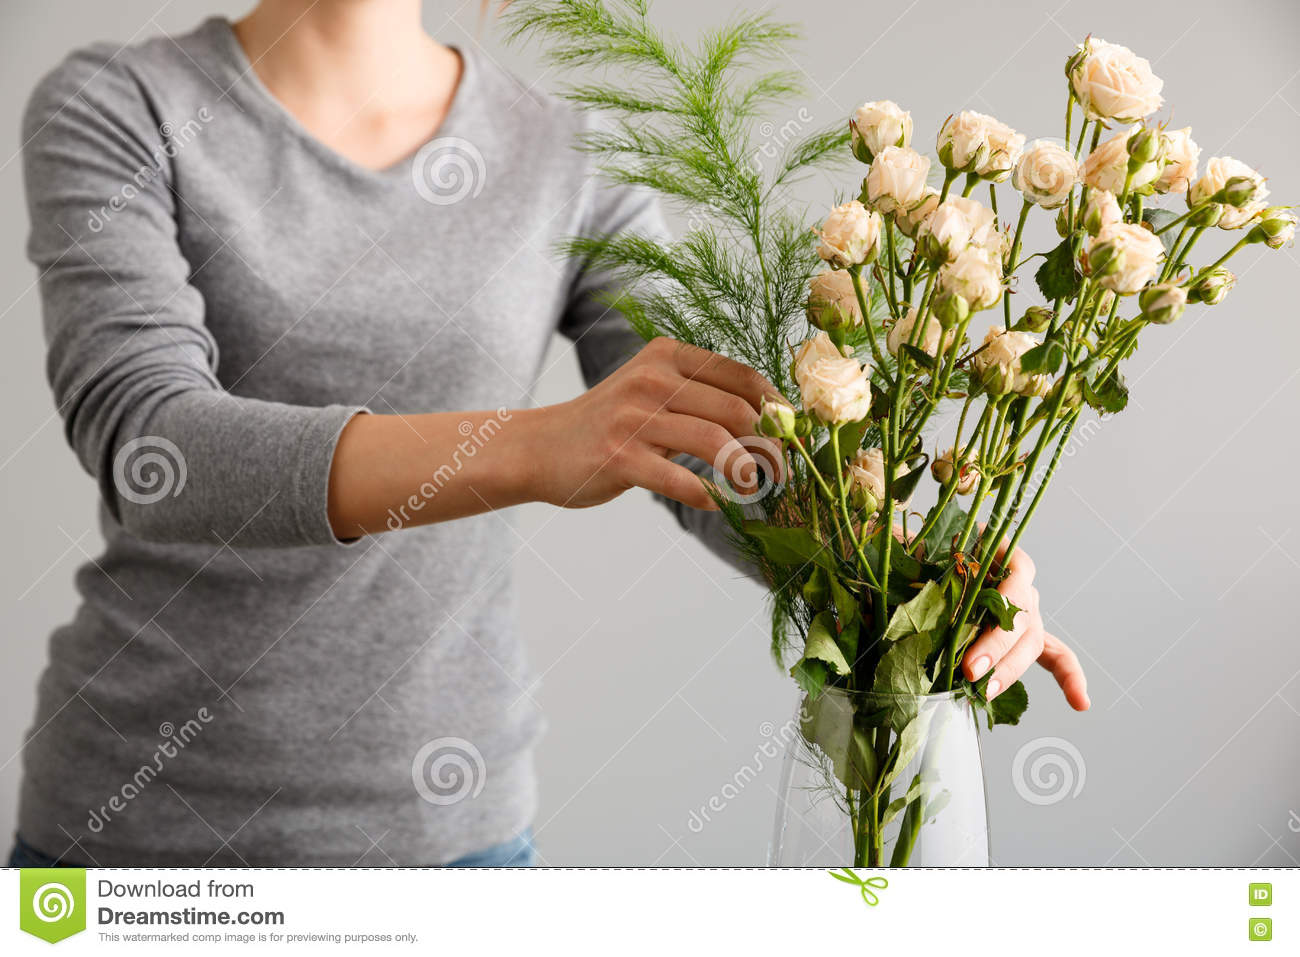 Girl make bouquet over gray background putting flowers in vase. & Girl Make Bouquet Over Gray Background Putting Flowers In Vase ...